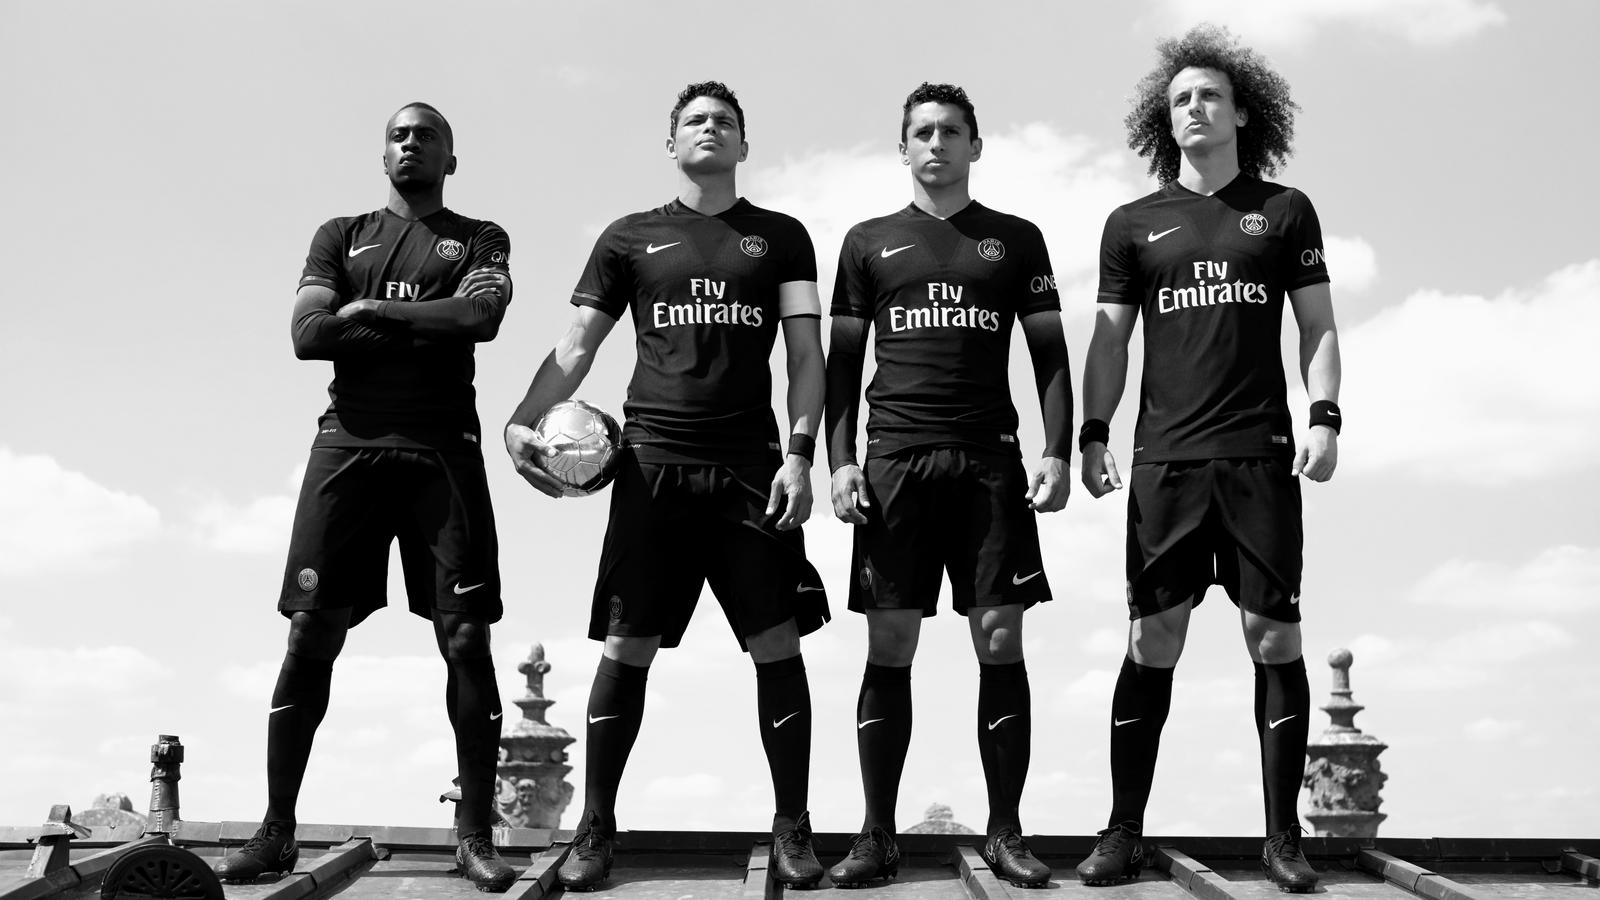 Nike Paris Saint-Germain Soccer Club Fined Millions